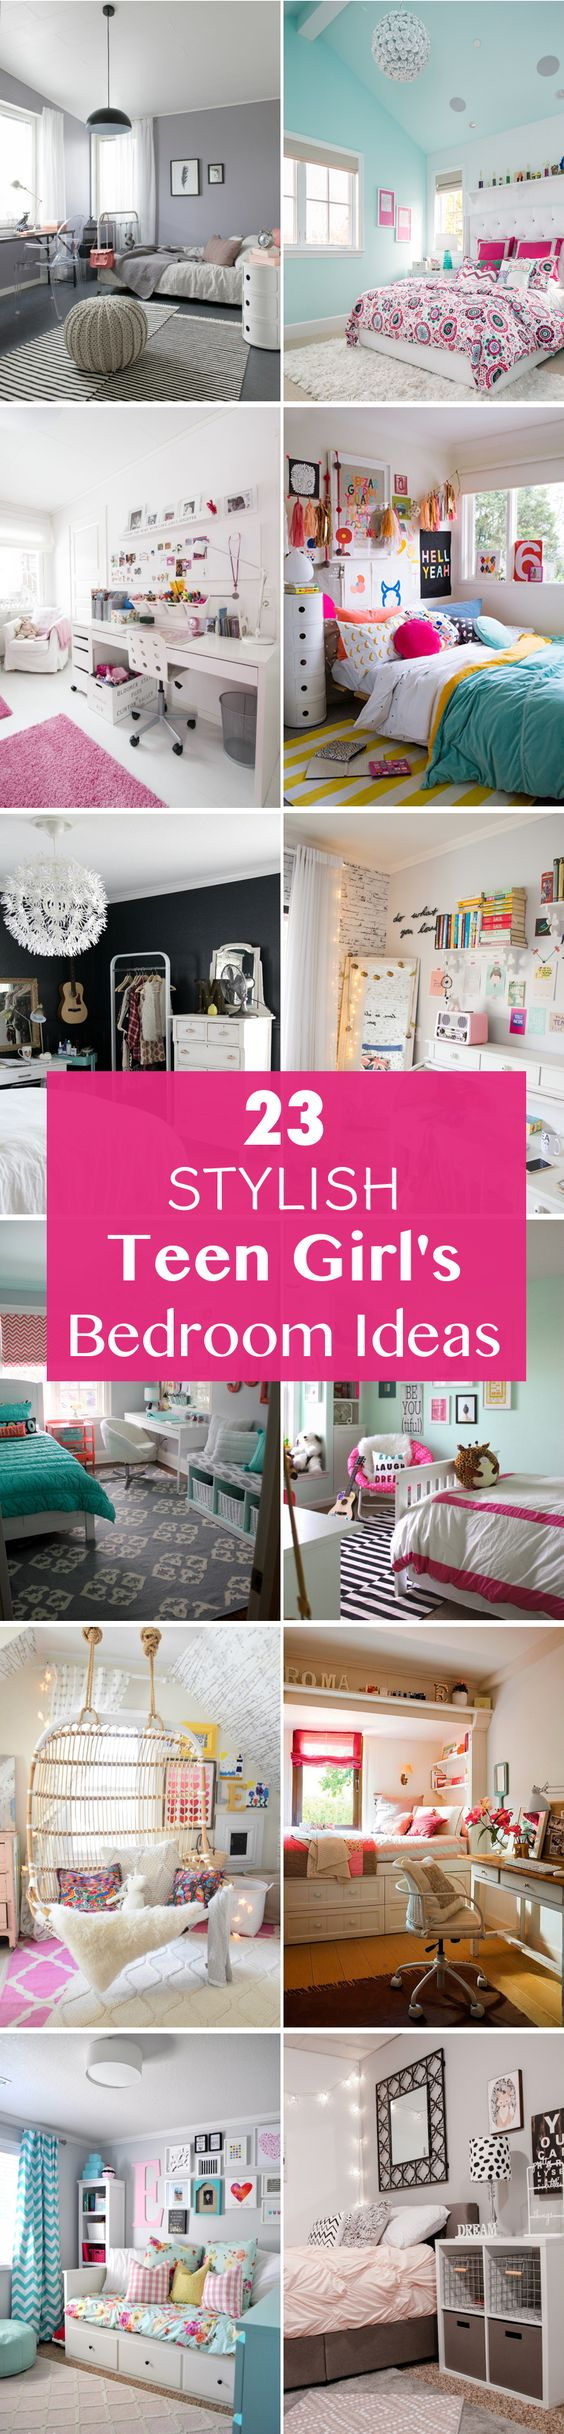 best images about cute rooms on pinterest